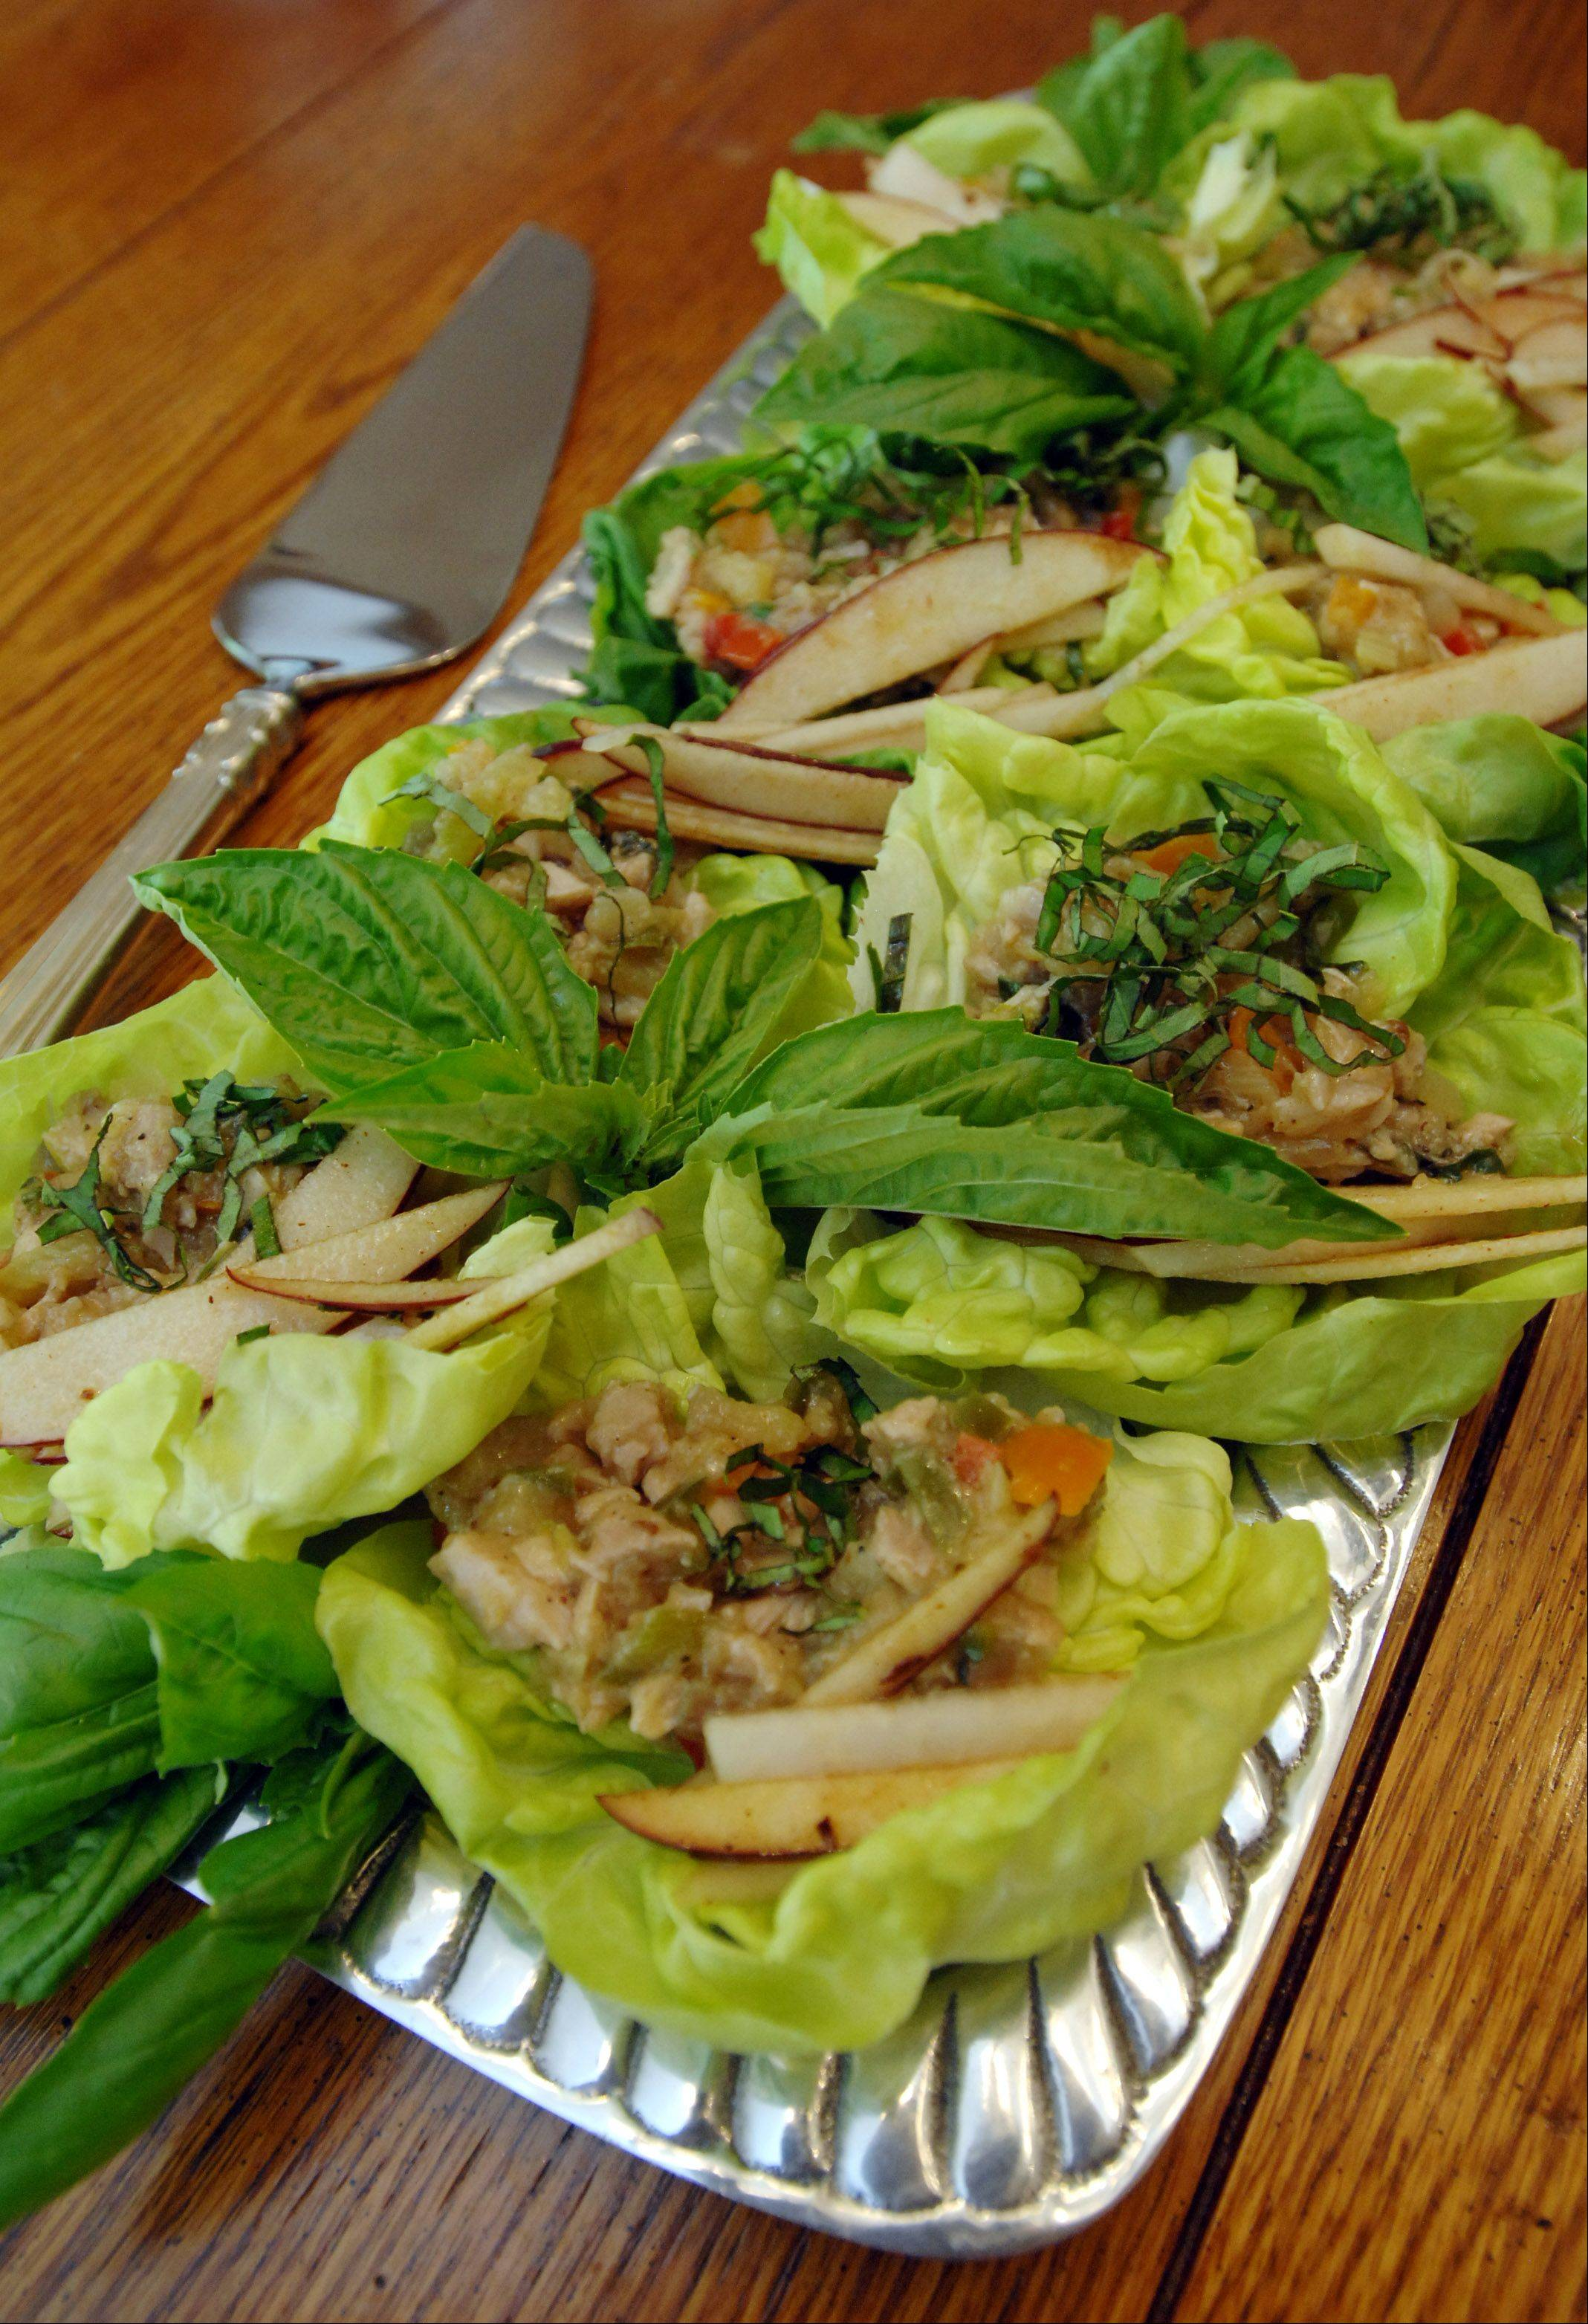 Surprise Lettuce Wraps